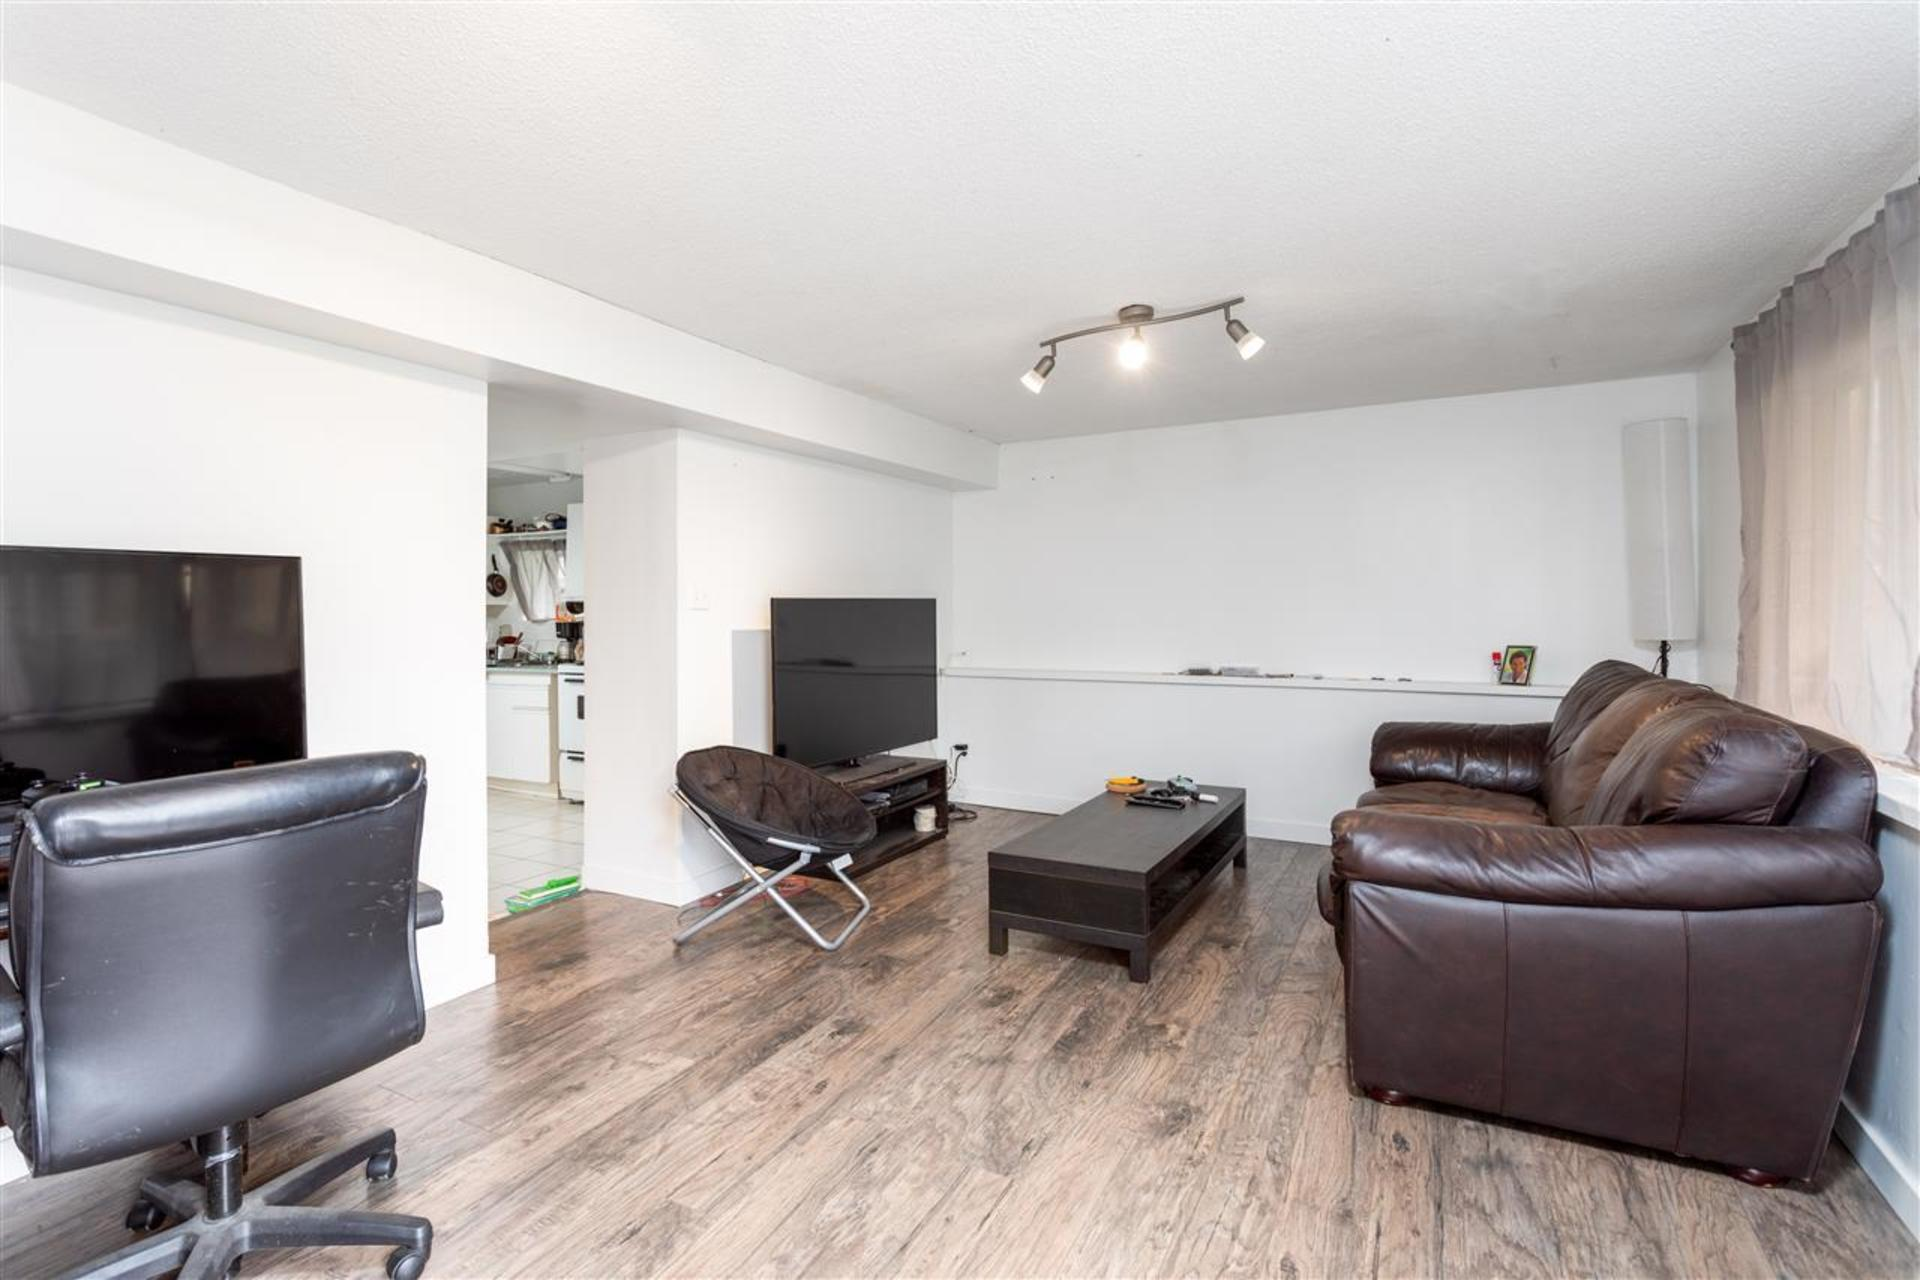 4556-pender-street-capitol-hill-bn-burnaby-north-10 at 4556 Pender Street, Capitol Hill BN, Burnaby North